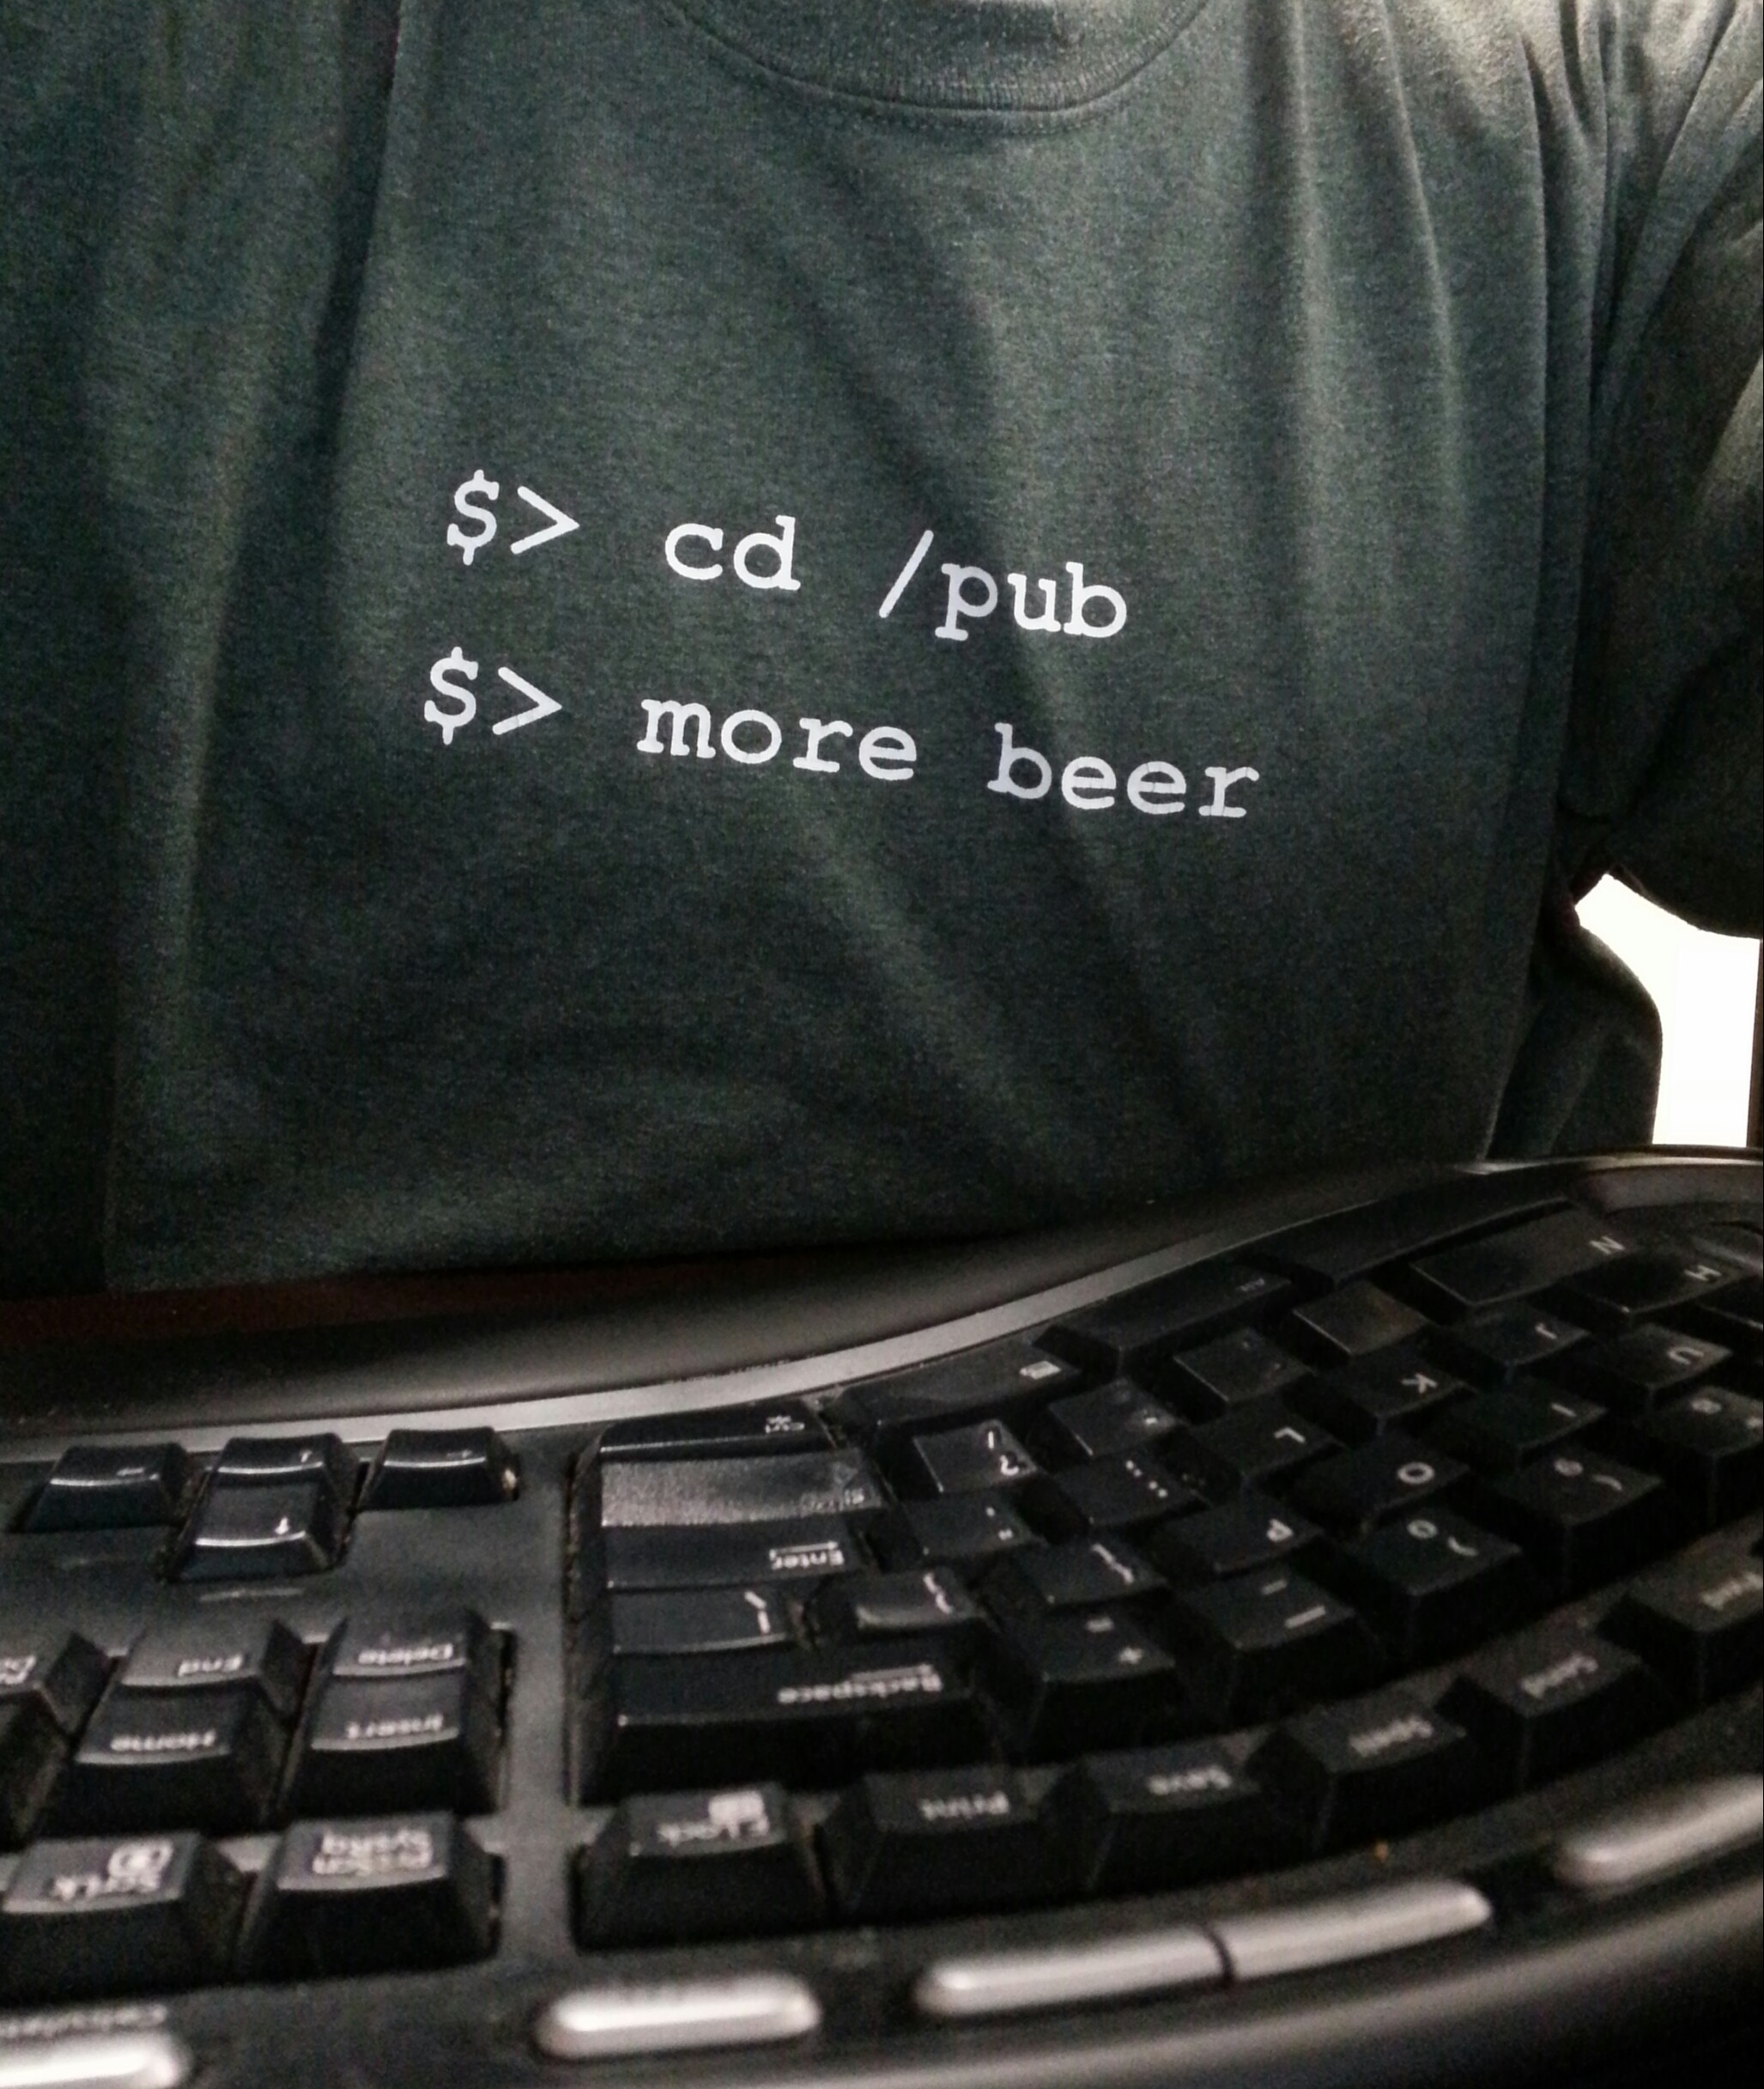 I'm sure this is funny if you're a programmer.